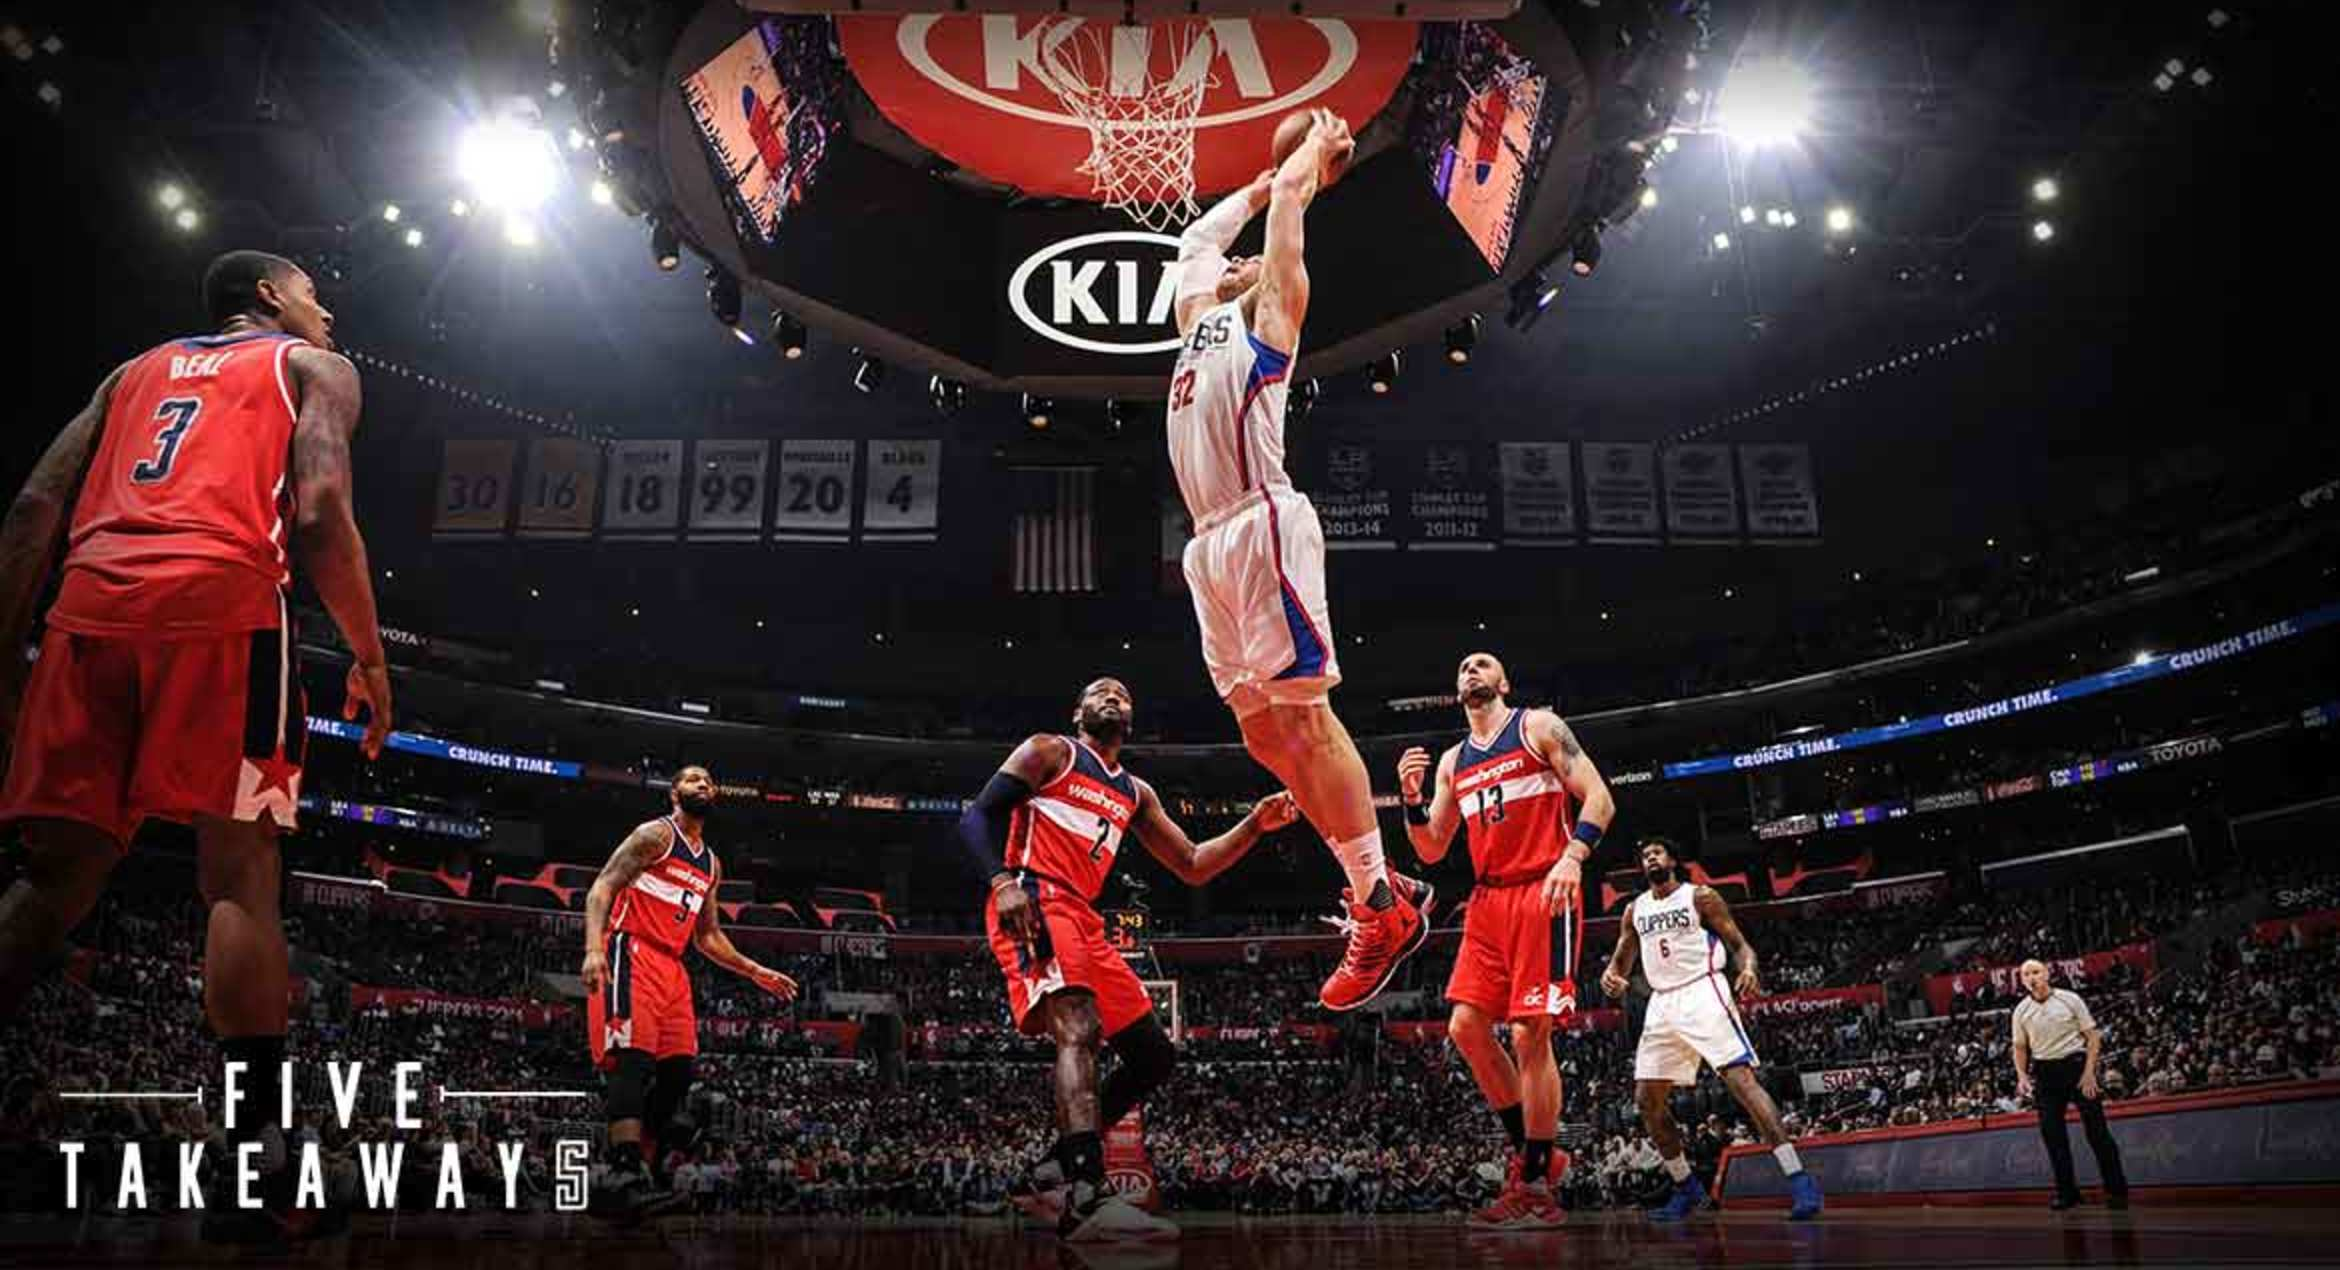 Five Takeaways: Clippers vs Wizards